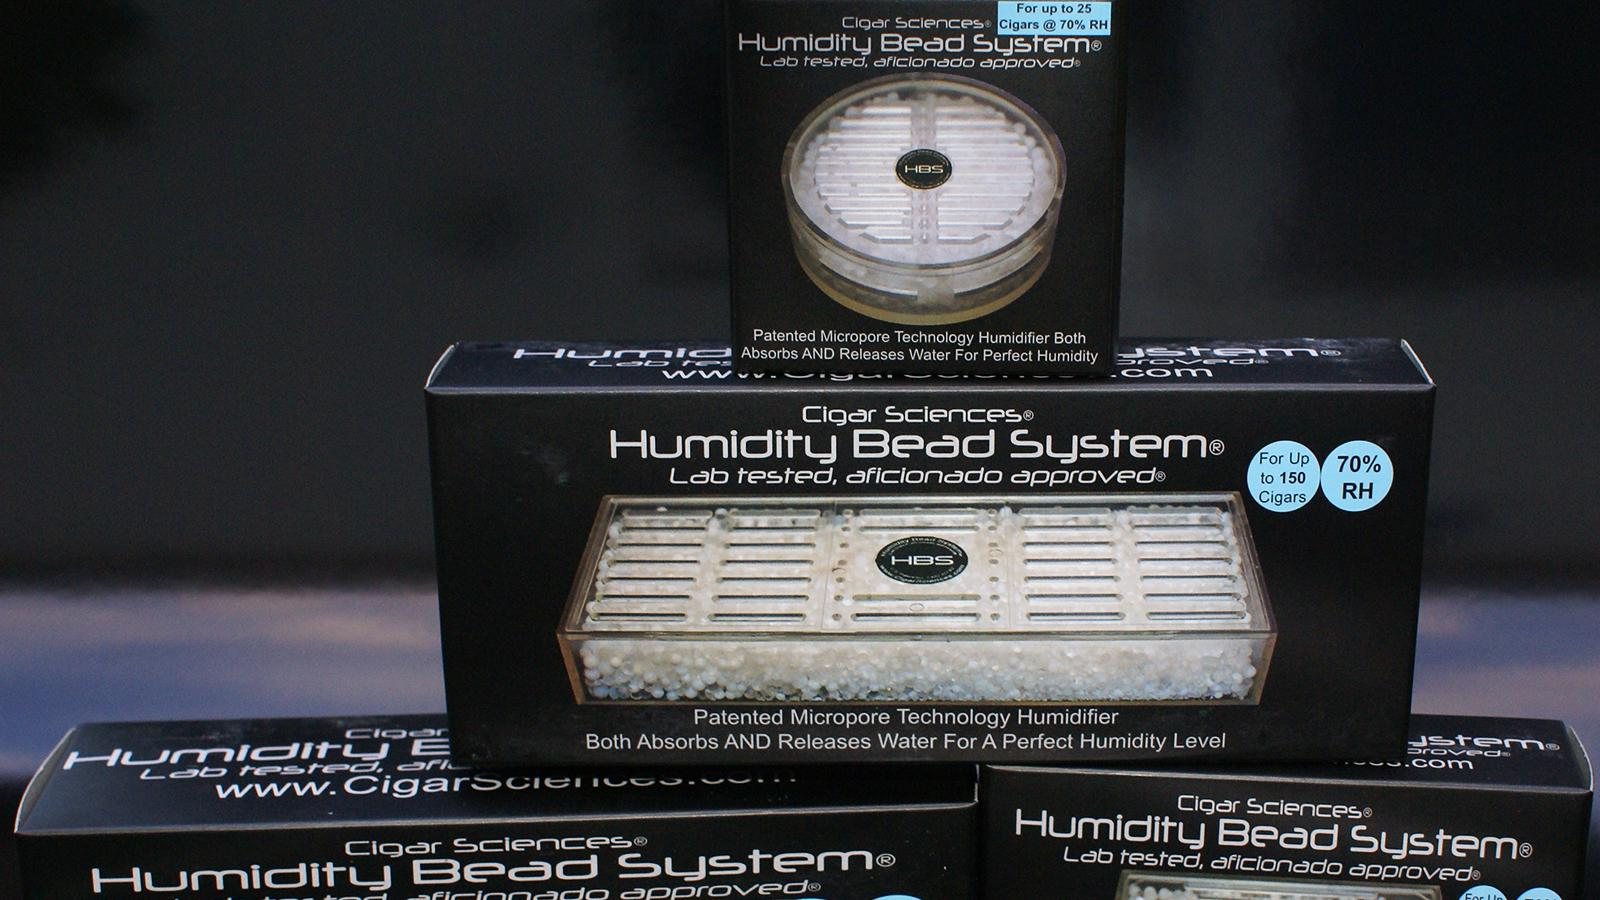 The Humidity Bead System by Cigar Sciences